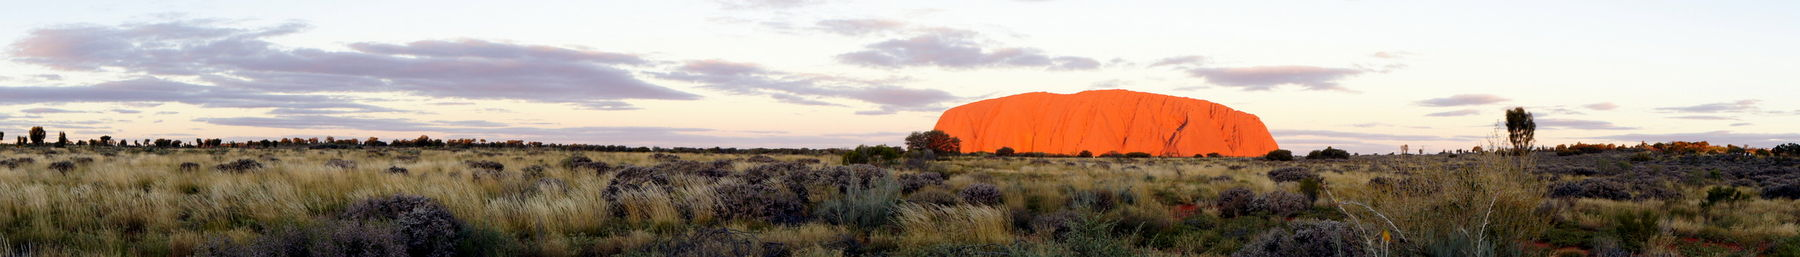 Uluru glowing at sunset, Uluru-Kata Tjuta National Park, Northern Territory